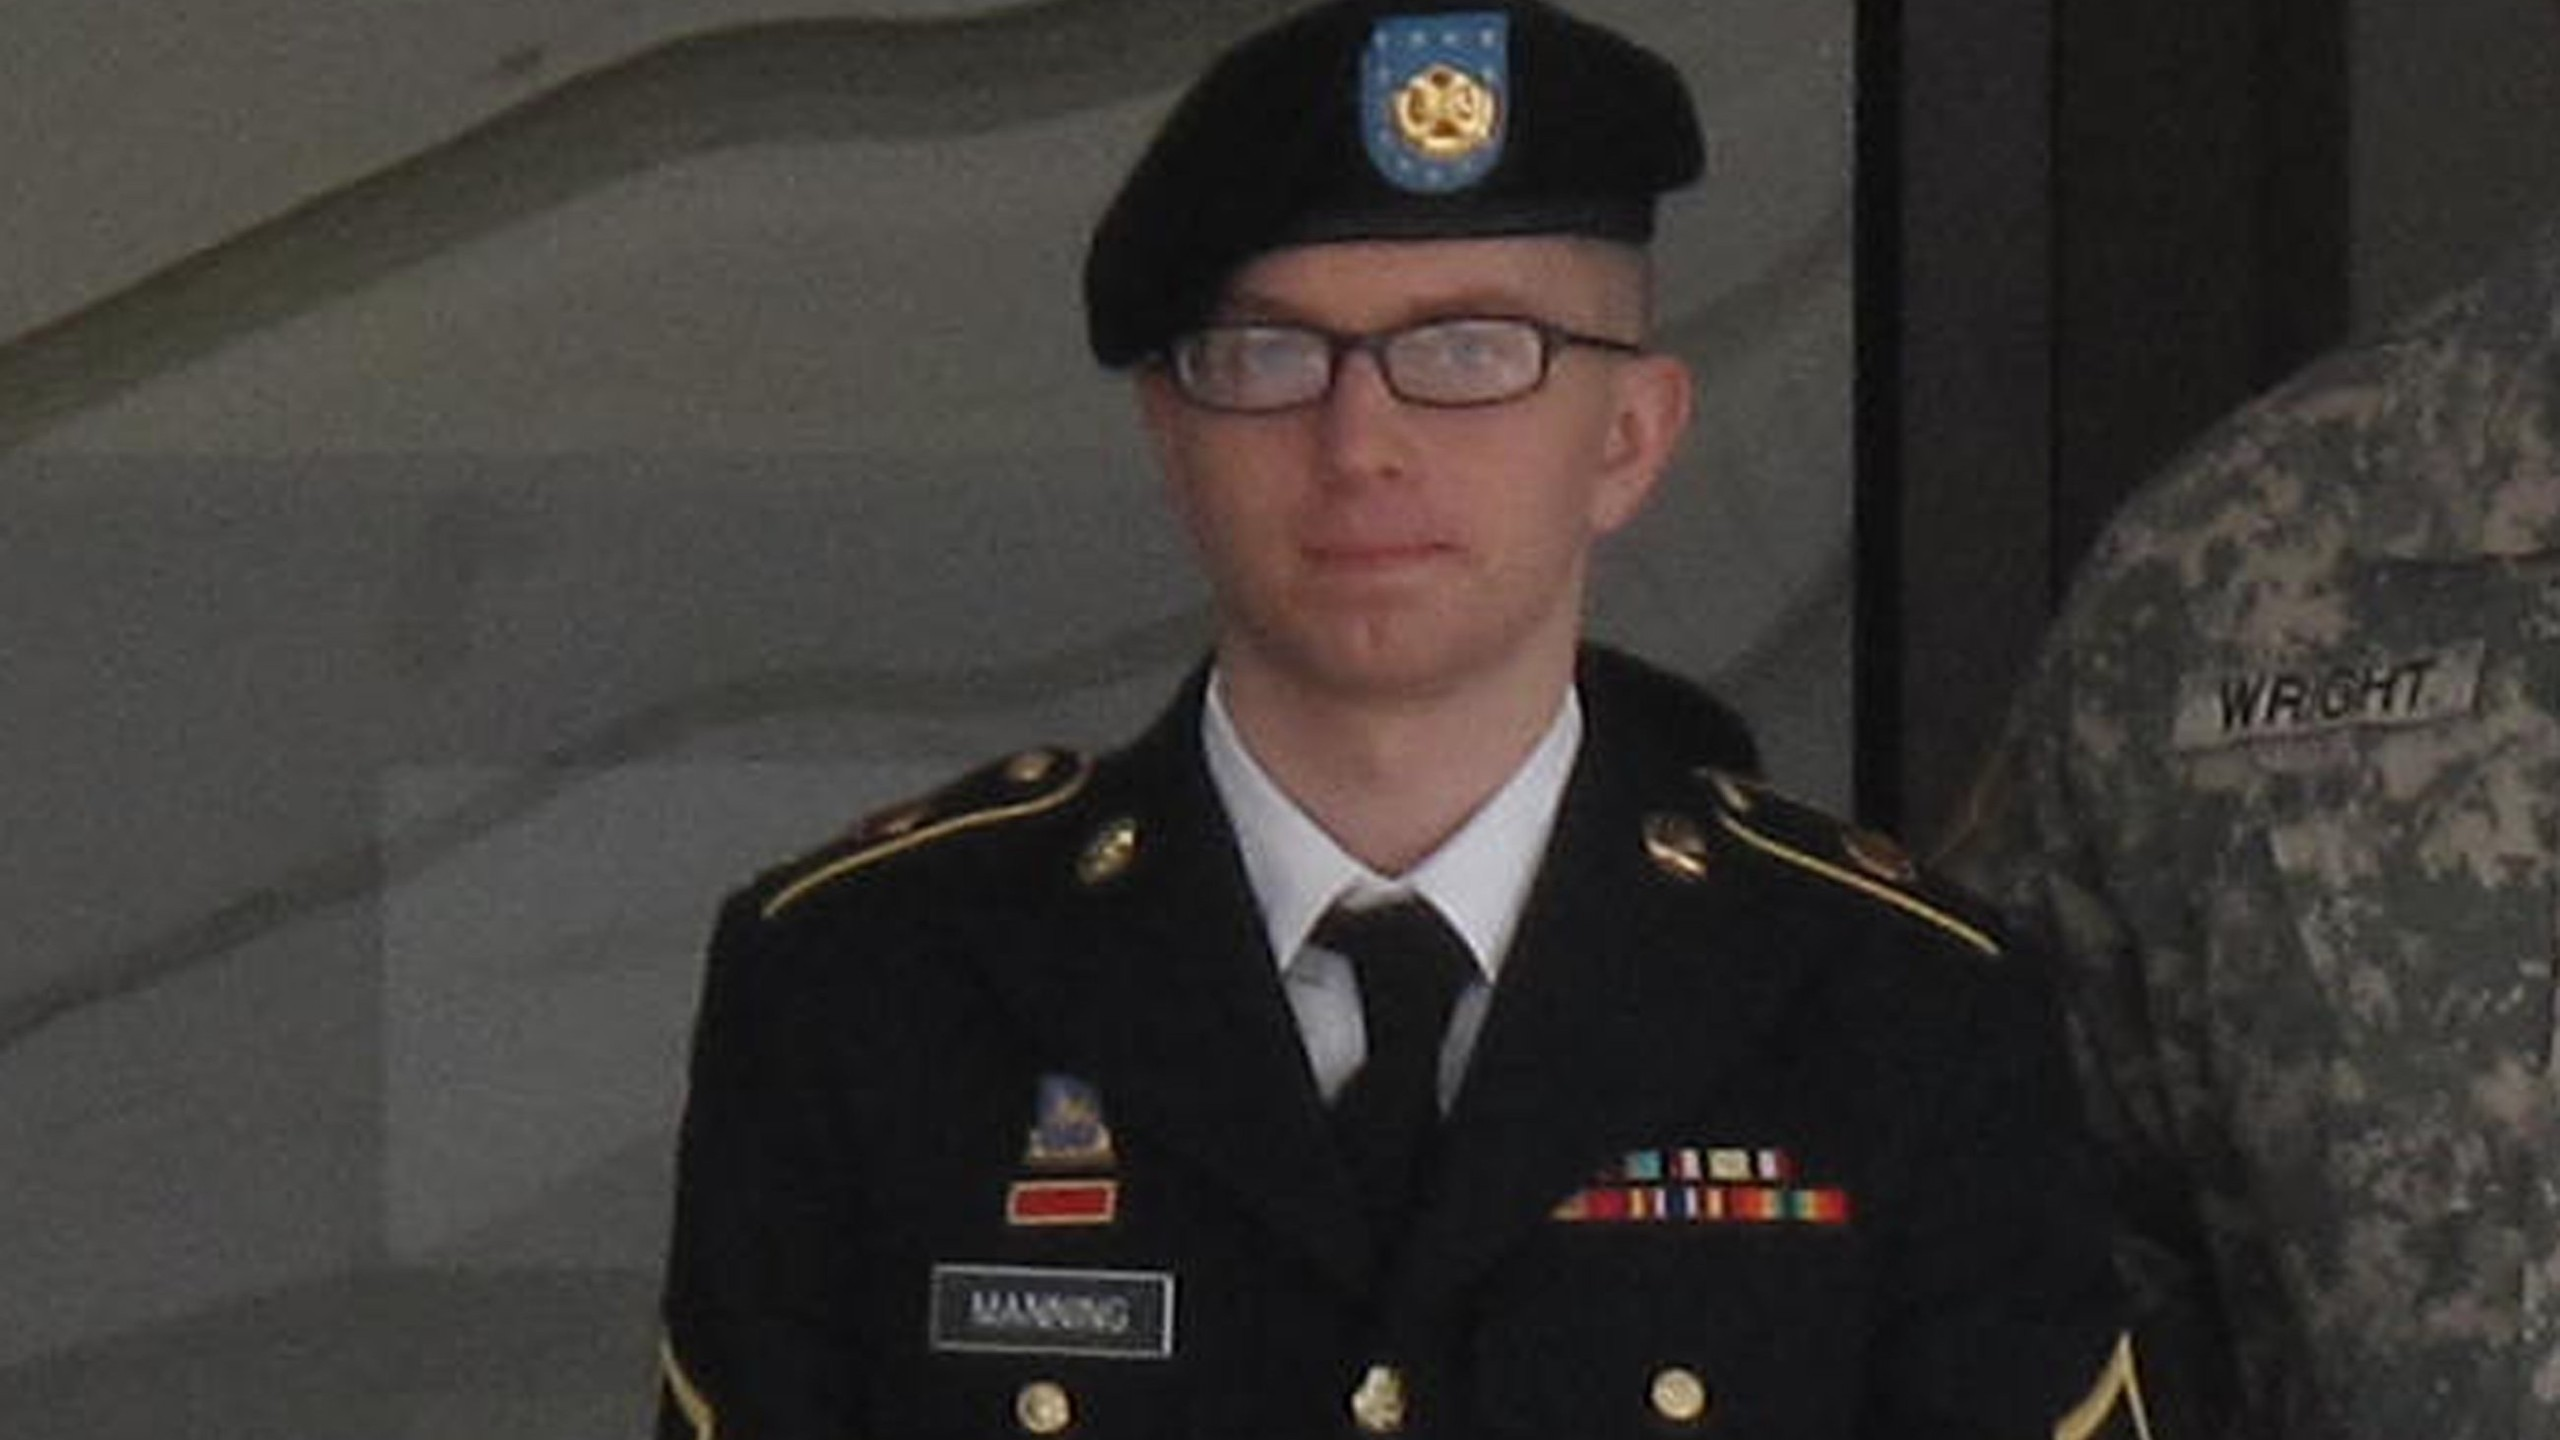 U.S. Army Pfc. Bradley Manning departs a military court hearing on March 15, 2012. (Credit: CNN)